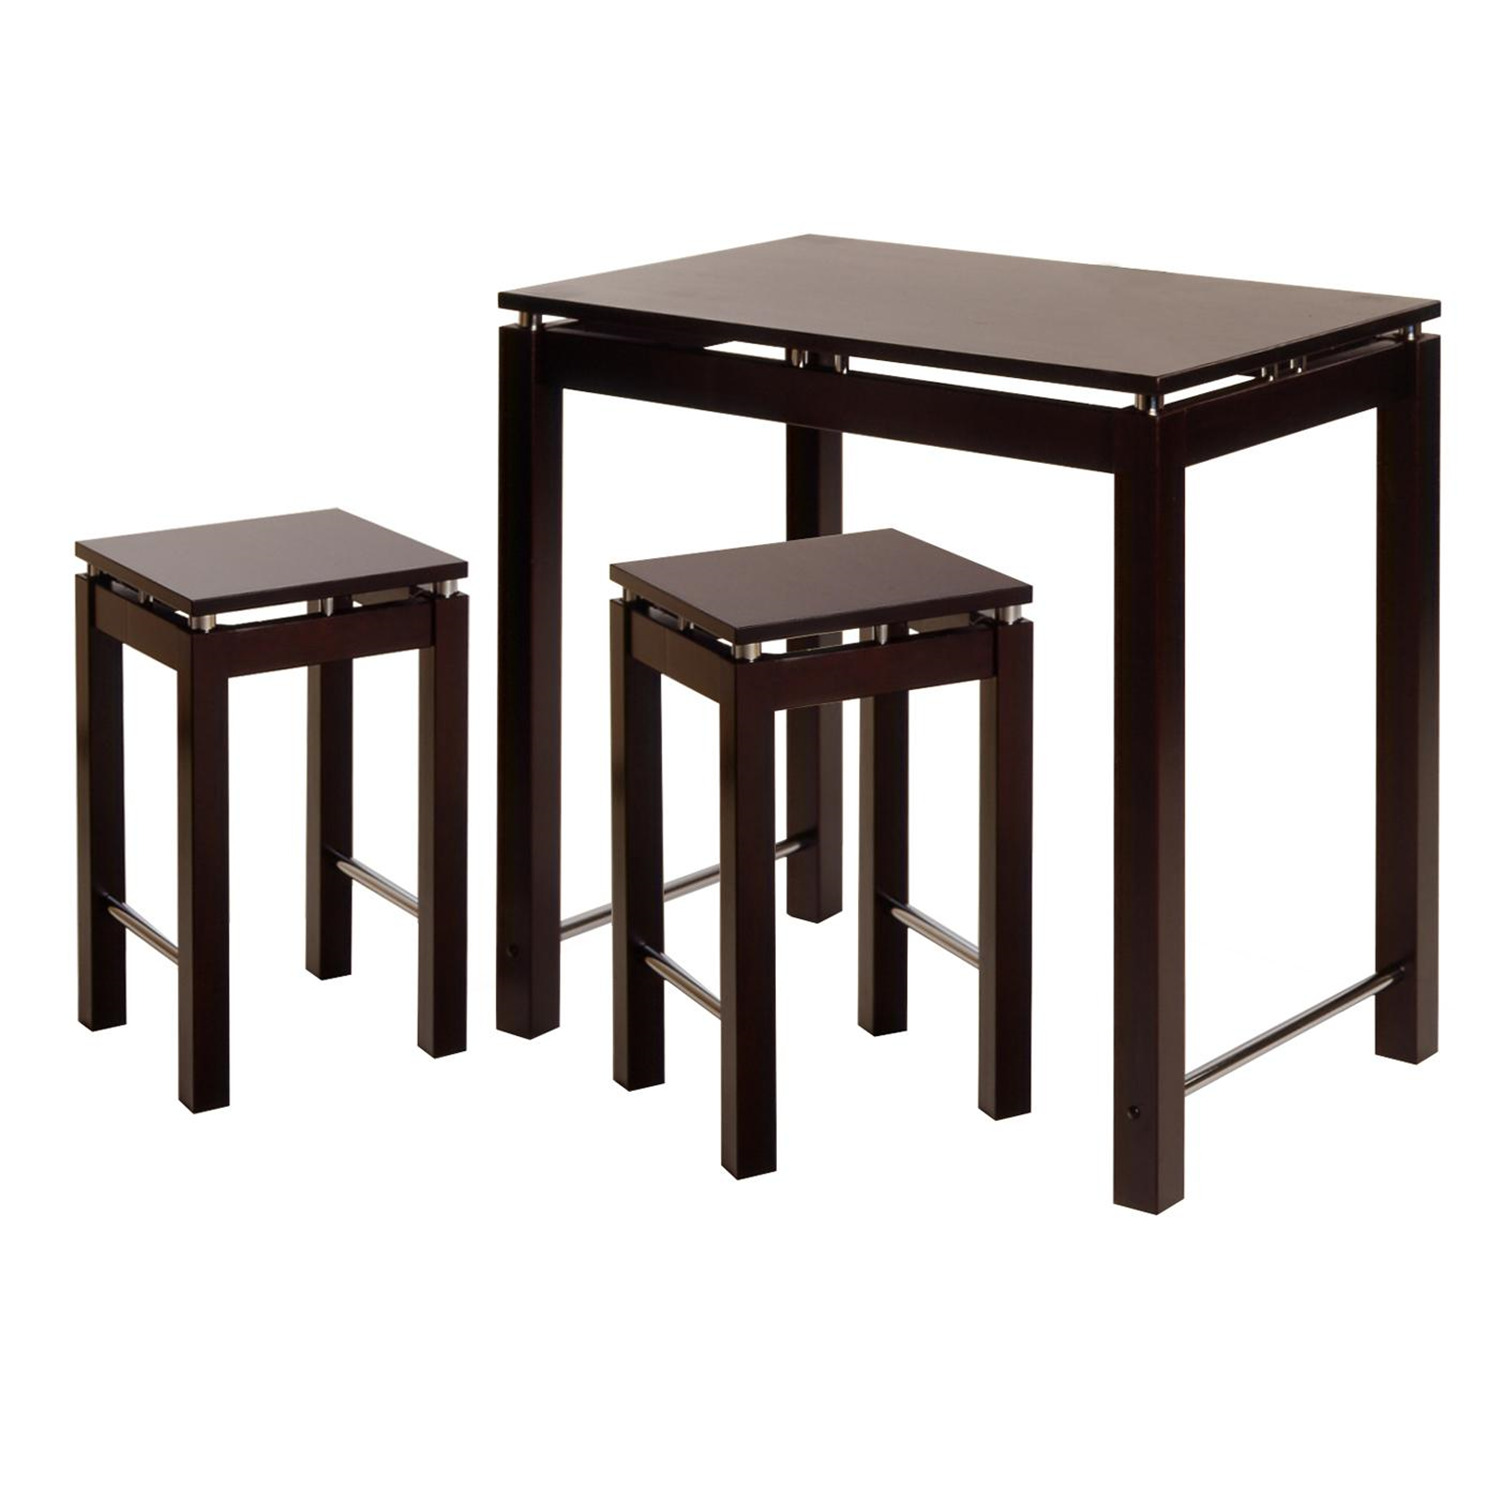 Winsome linea 3pc pub kitchen set island table with 2 for Kitchen table with stools